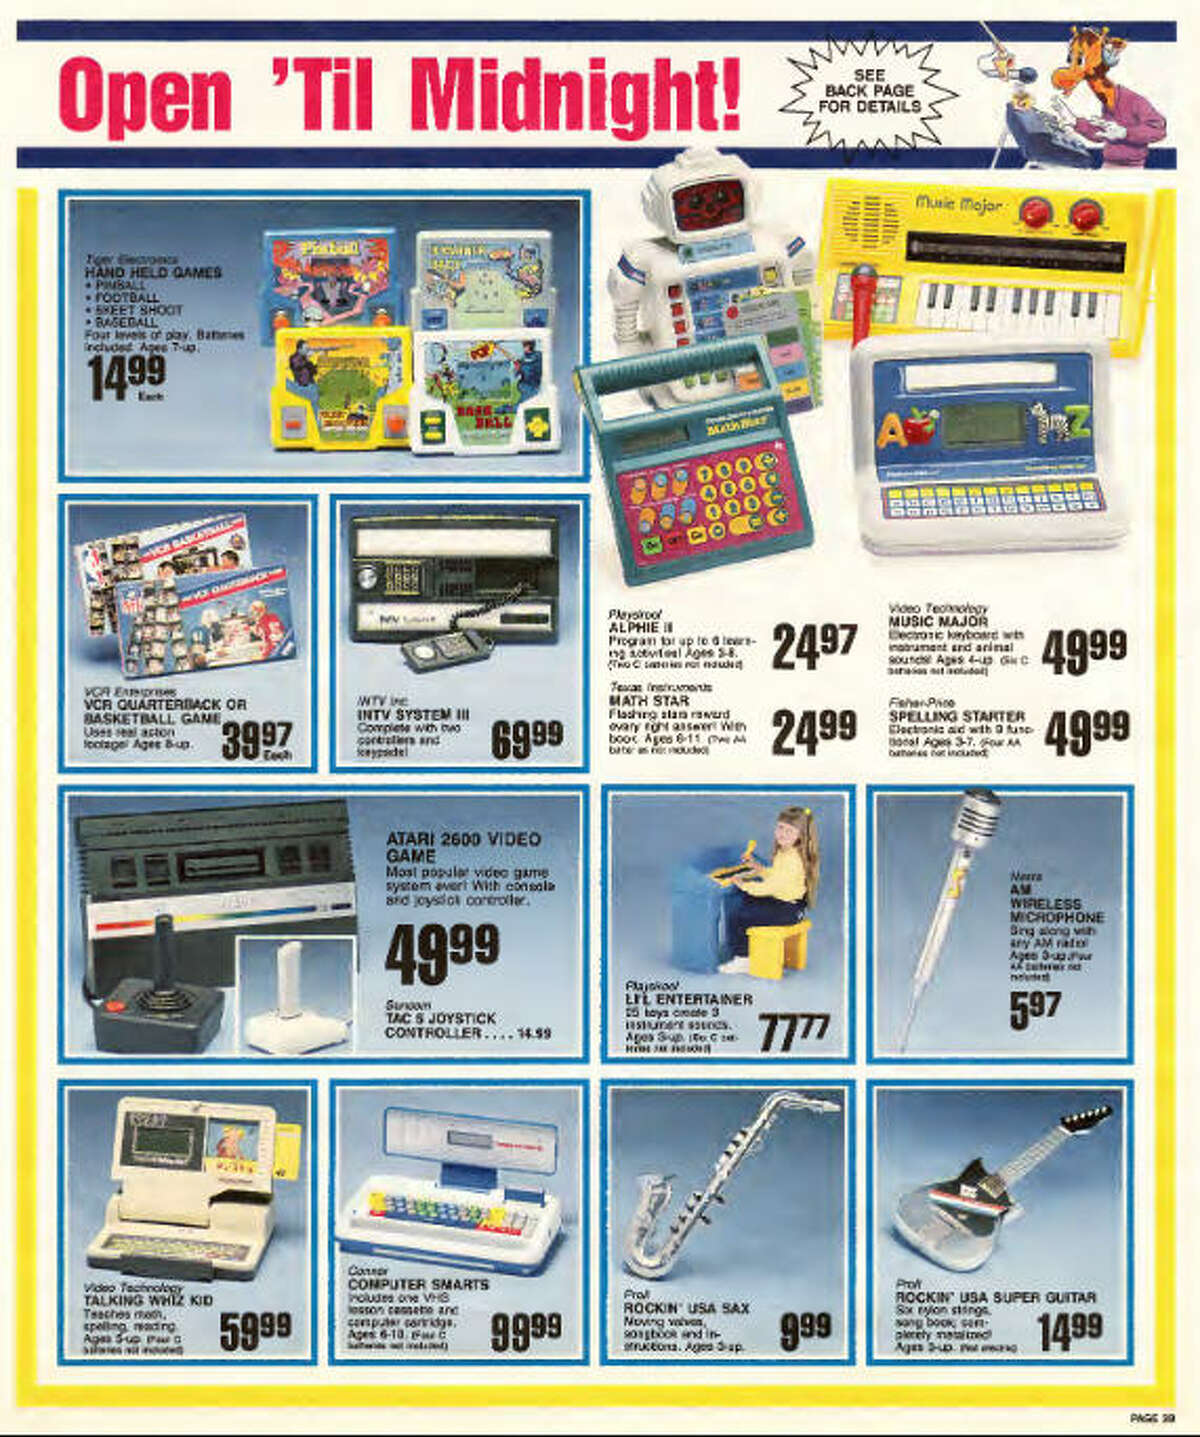 A user on the website Archive.org has scanned in a 1987 Toys 'R' Us circular from the holiday season that year, filled with toys that would make millennials swoon for their long-gone childhoods.